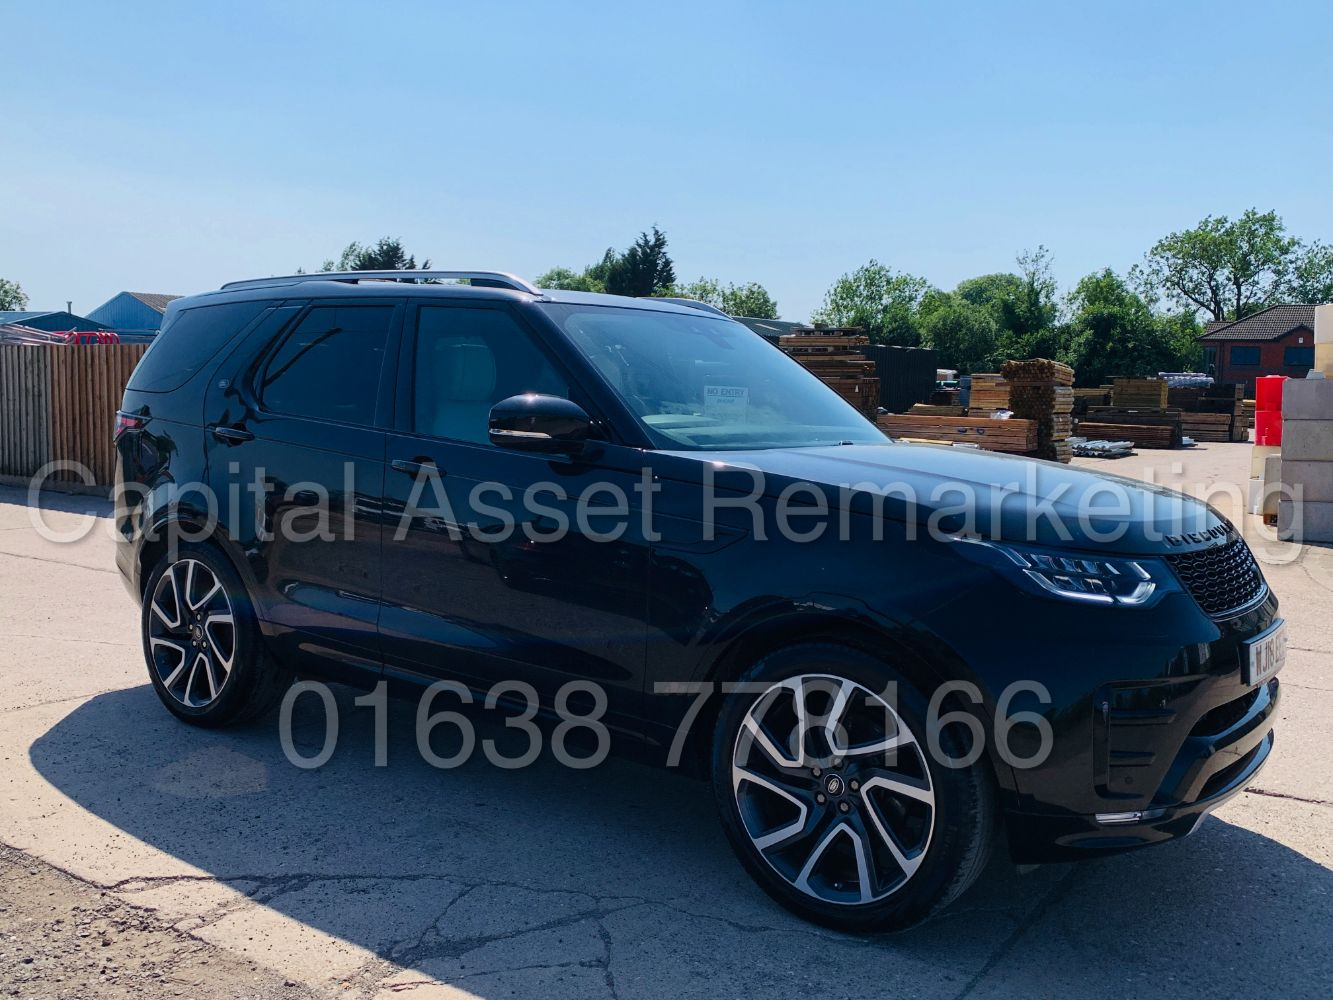 2018 Land Rover Discovery 3.0 TD6 *HSE Dynamic* - 2018 Mercedes-Benz E220d *Saloon* + Many More: Cars, Commercials & 4x4's !!!